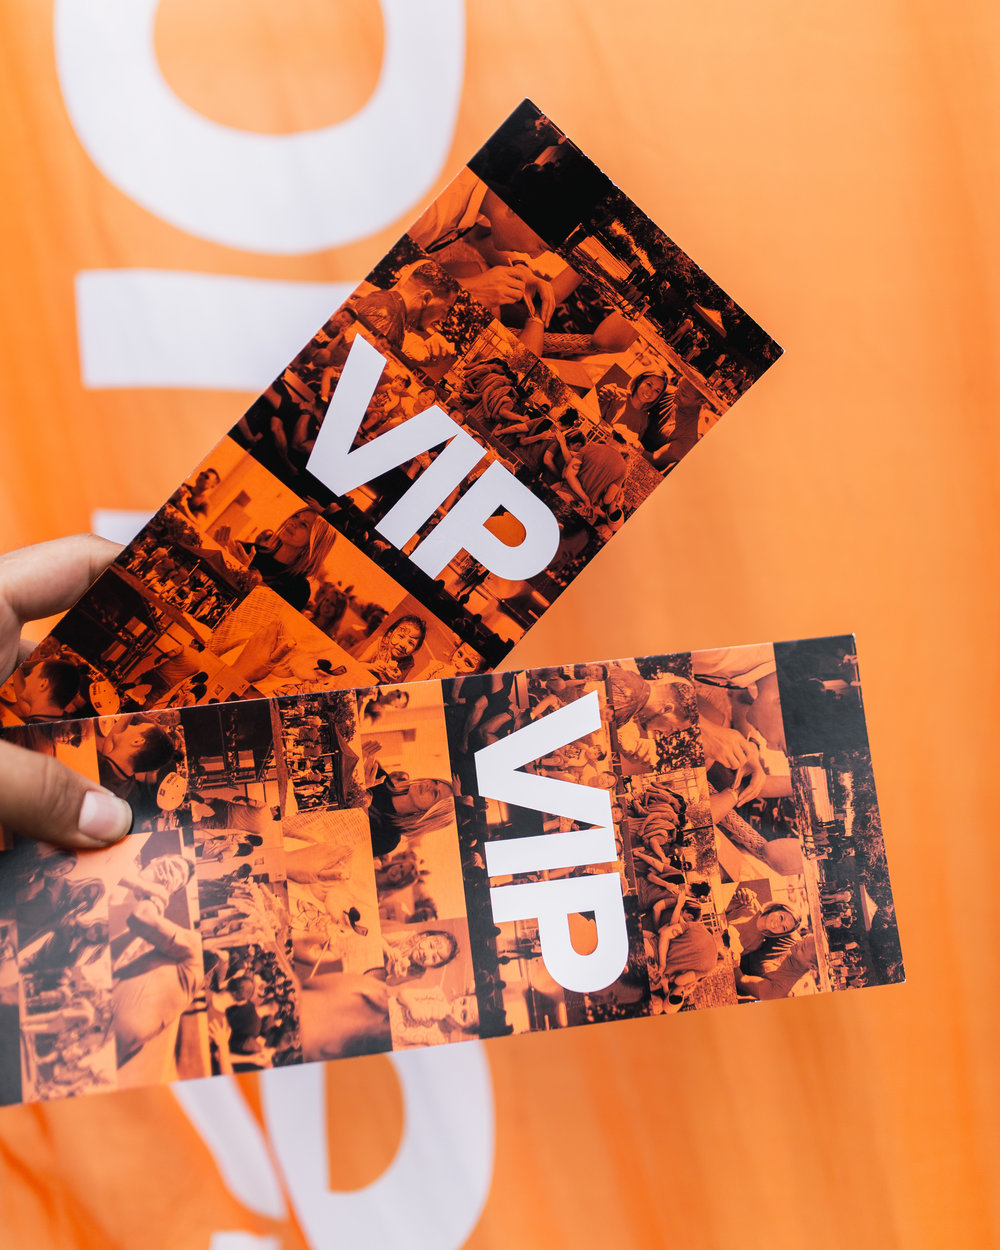 FIRST TIME? - YOU'RE OUR VIP!HERE'S WHAT YOU CAN EXPECT